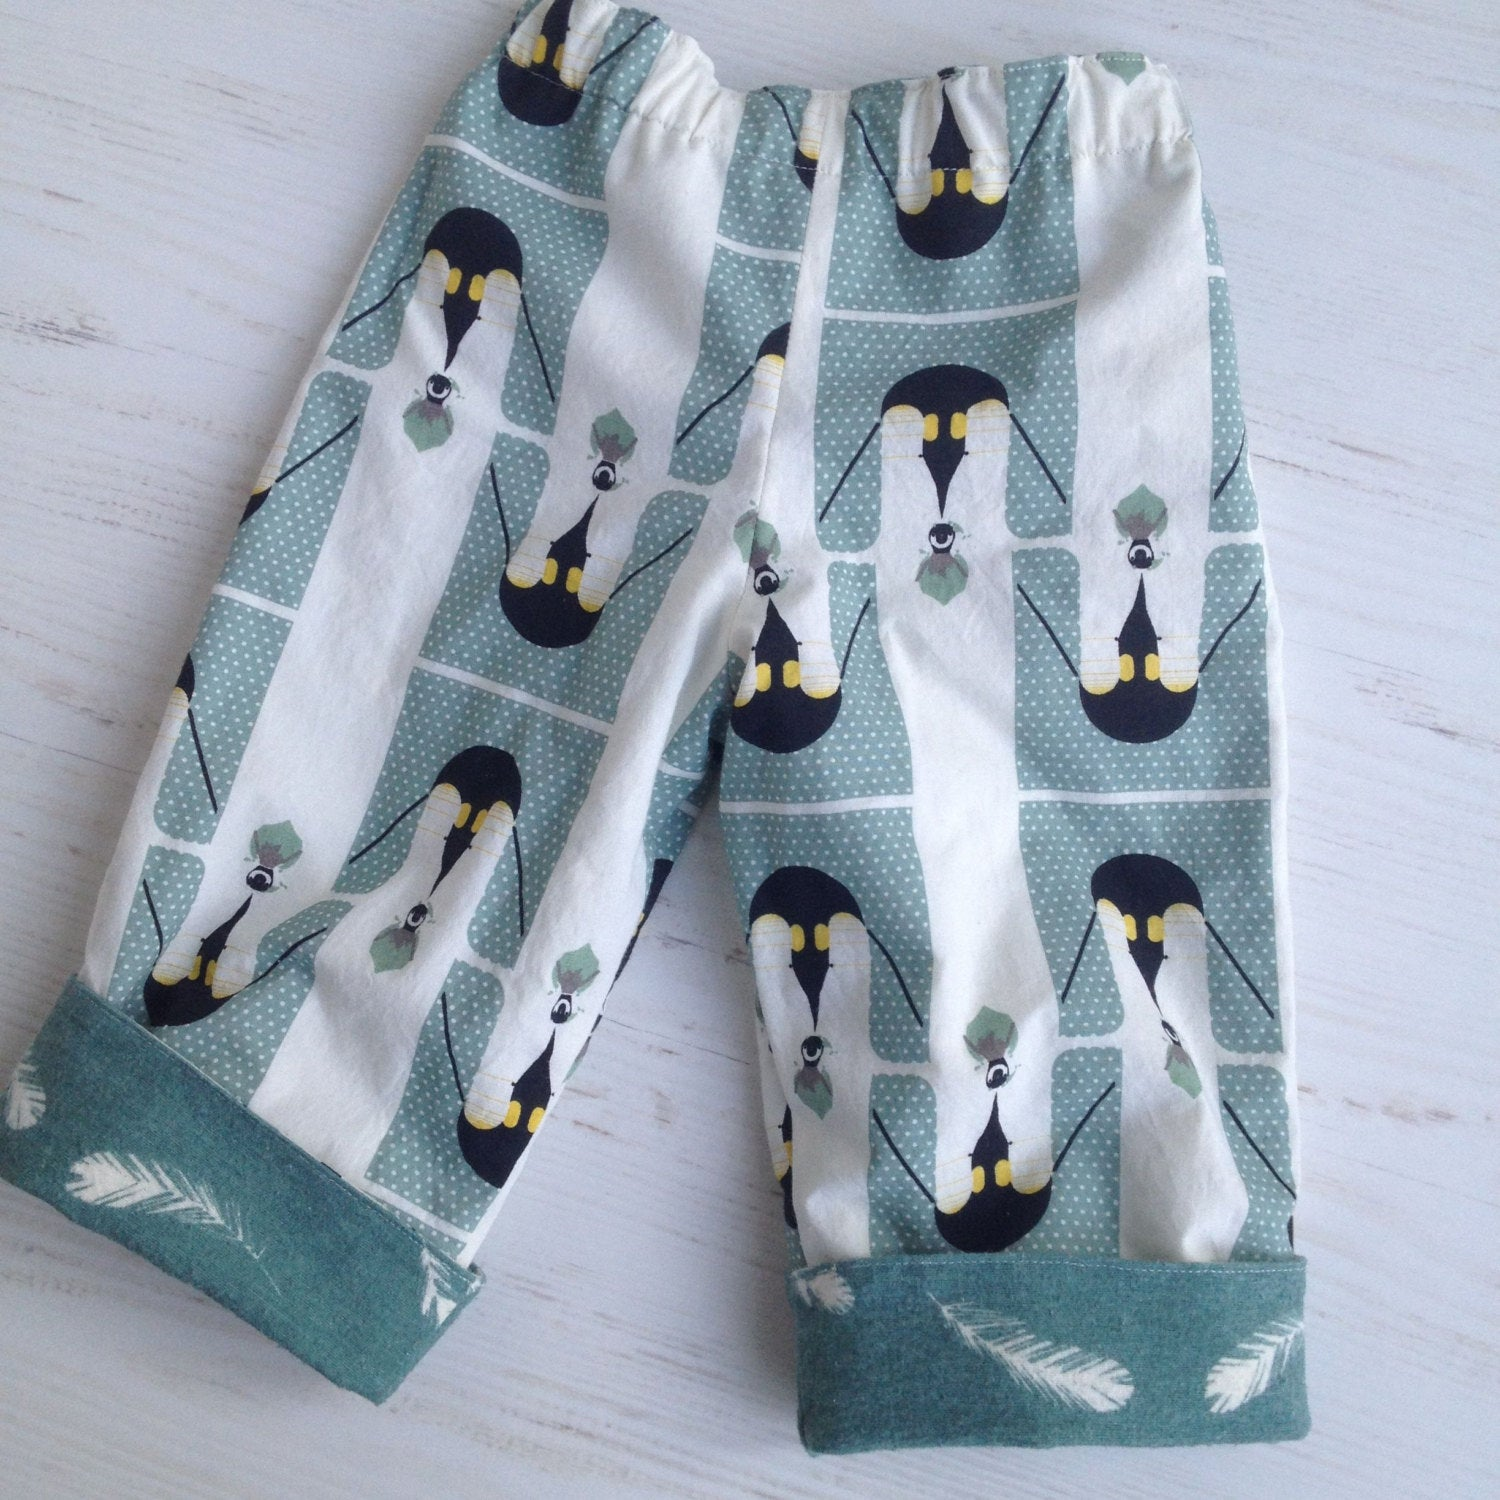 flannel reversible pants in Charley Harper Penguins and Feathers sizes - little girl Pearl